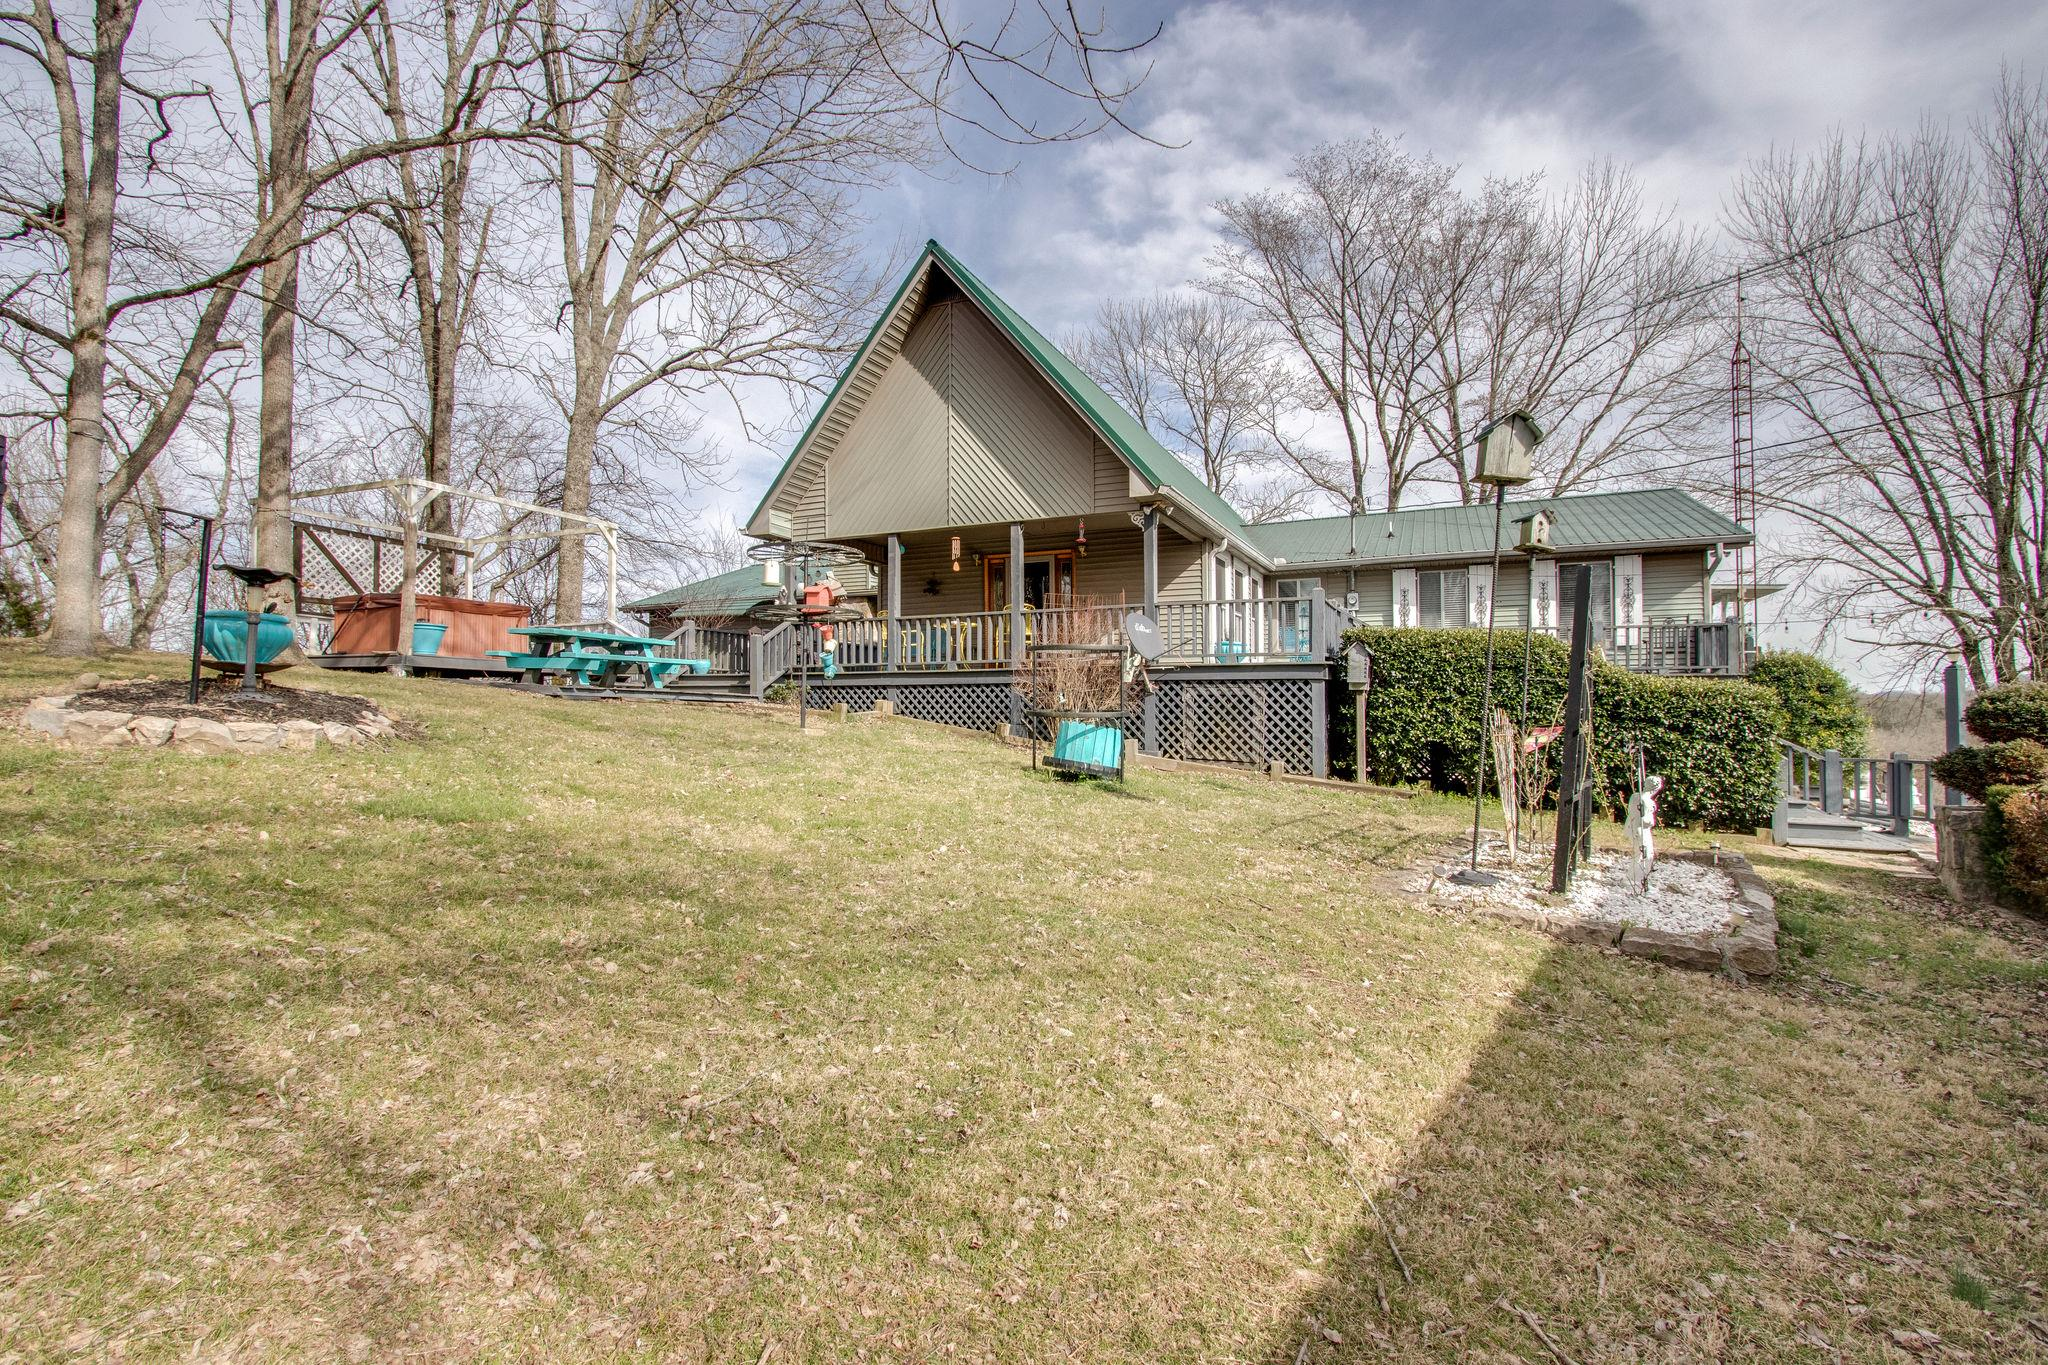 25 Hillview Ln N, Pleasant Shade, TN 37145 - Pleasant Shade, TN real estate listing